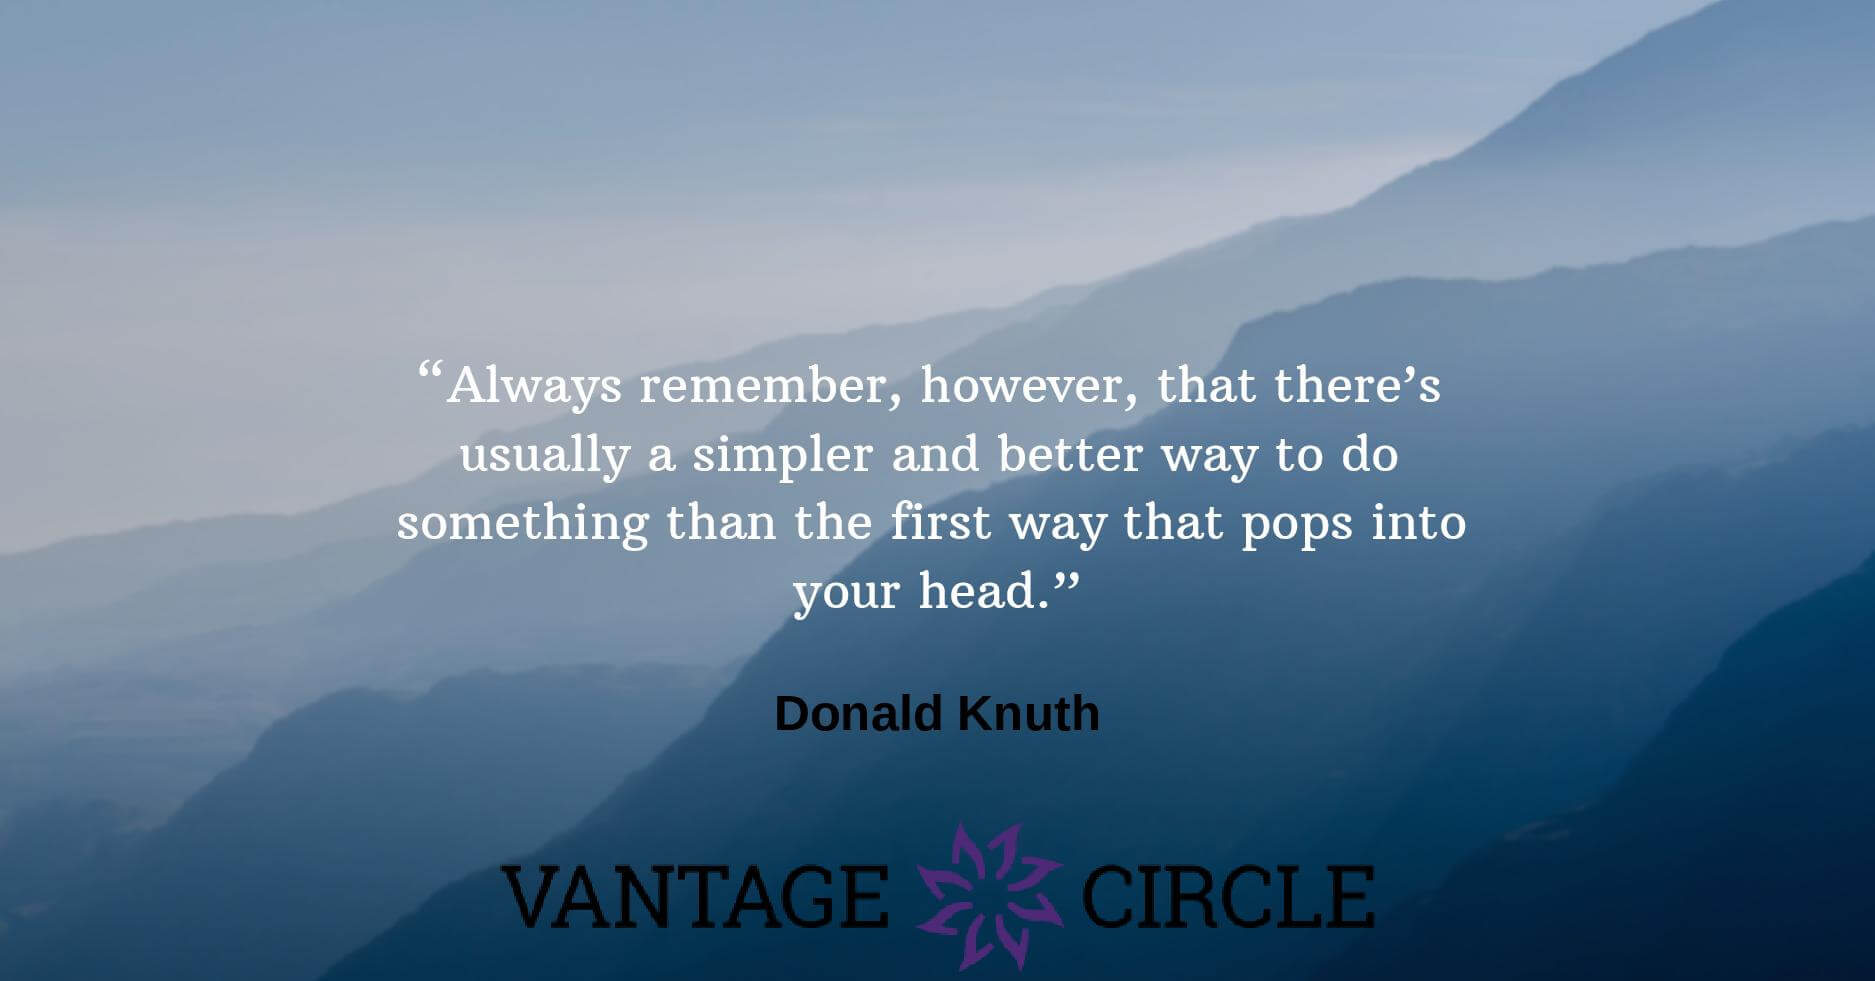 Employee-motivational-quotes-Donald-Knuth